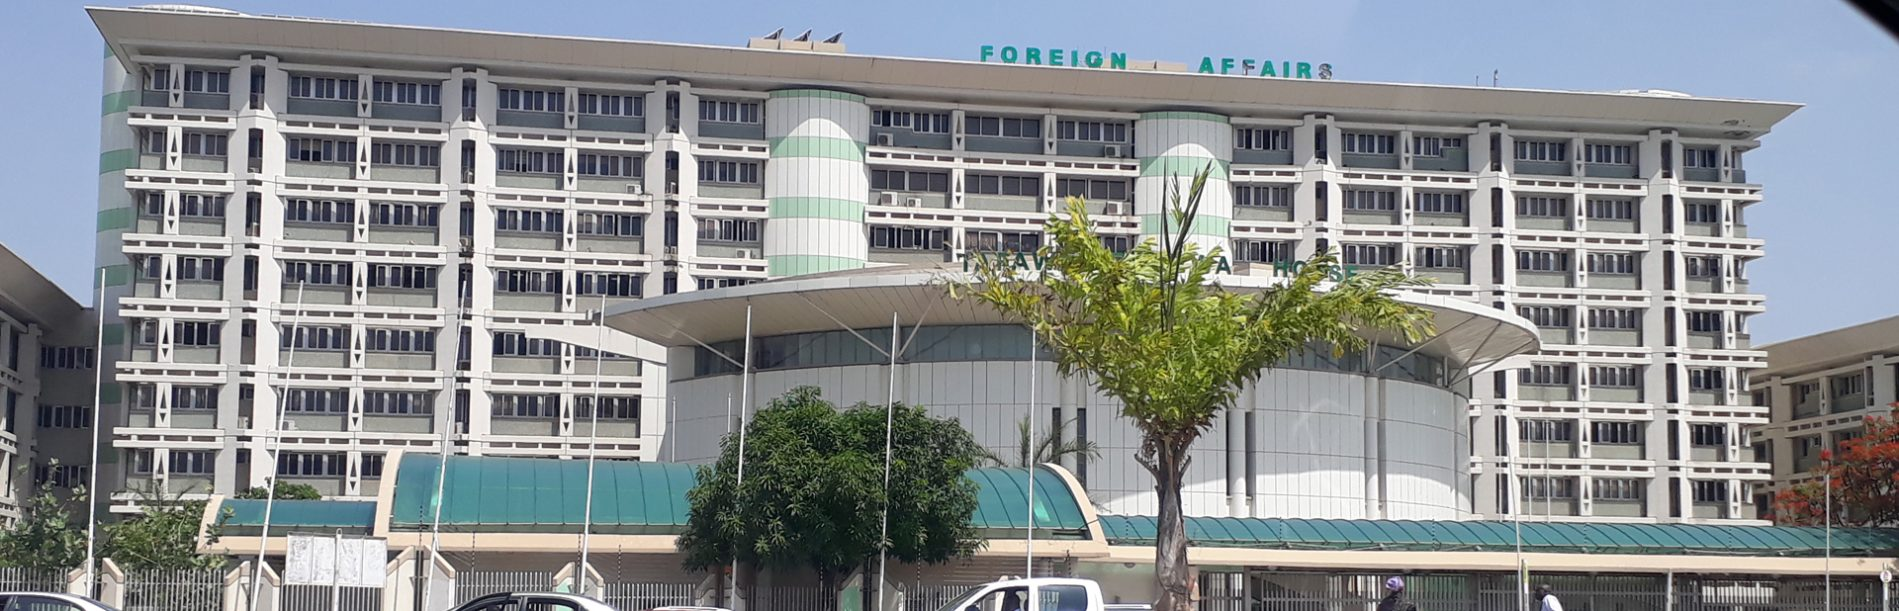 Ministry of Foreign Affairs, Abuja